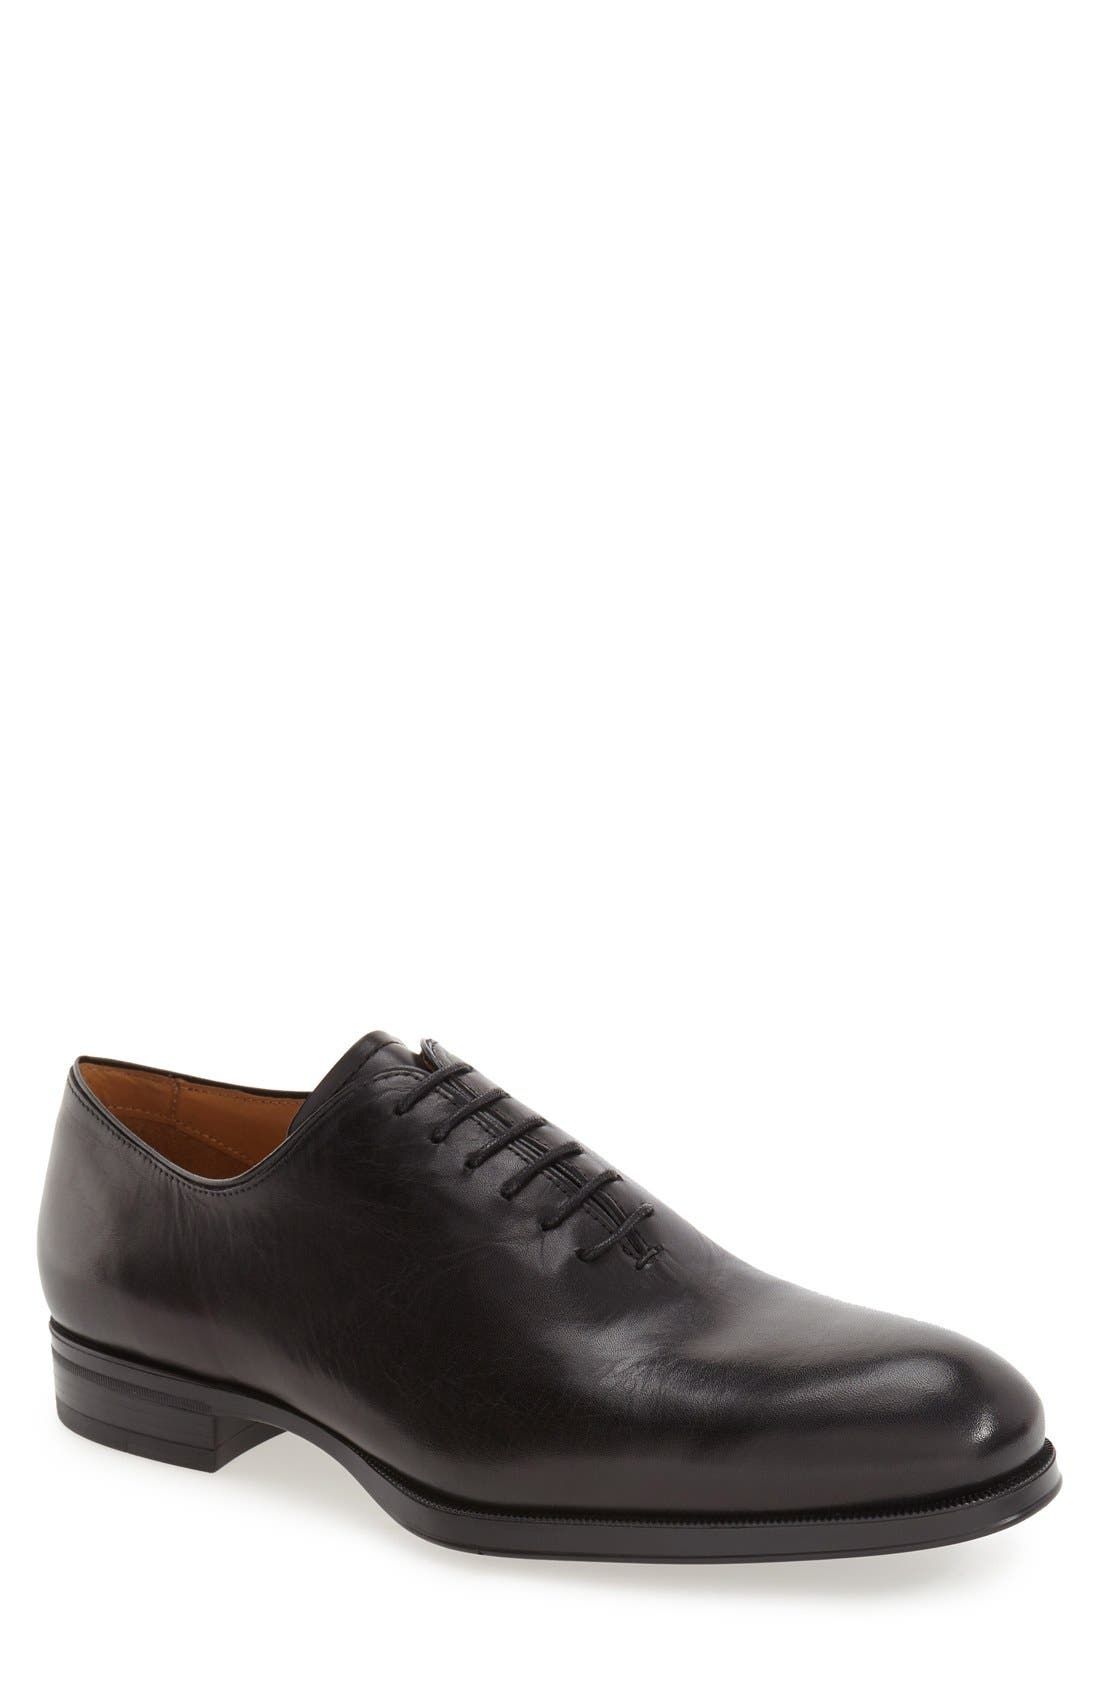 Main Image - Vince Camuto 'Tarby' Wholecut Oxford (Men)